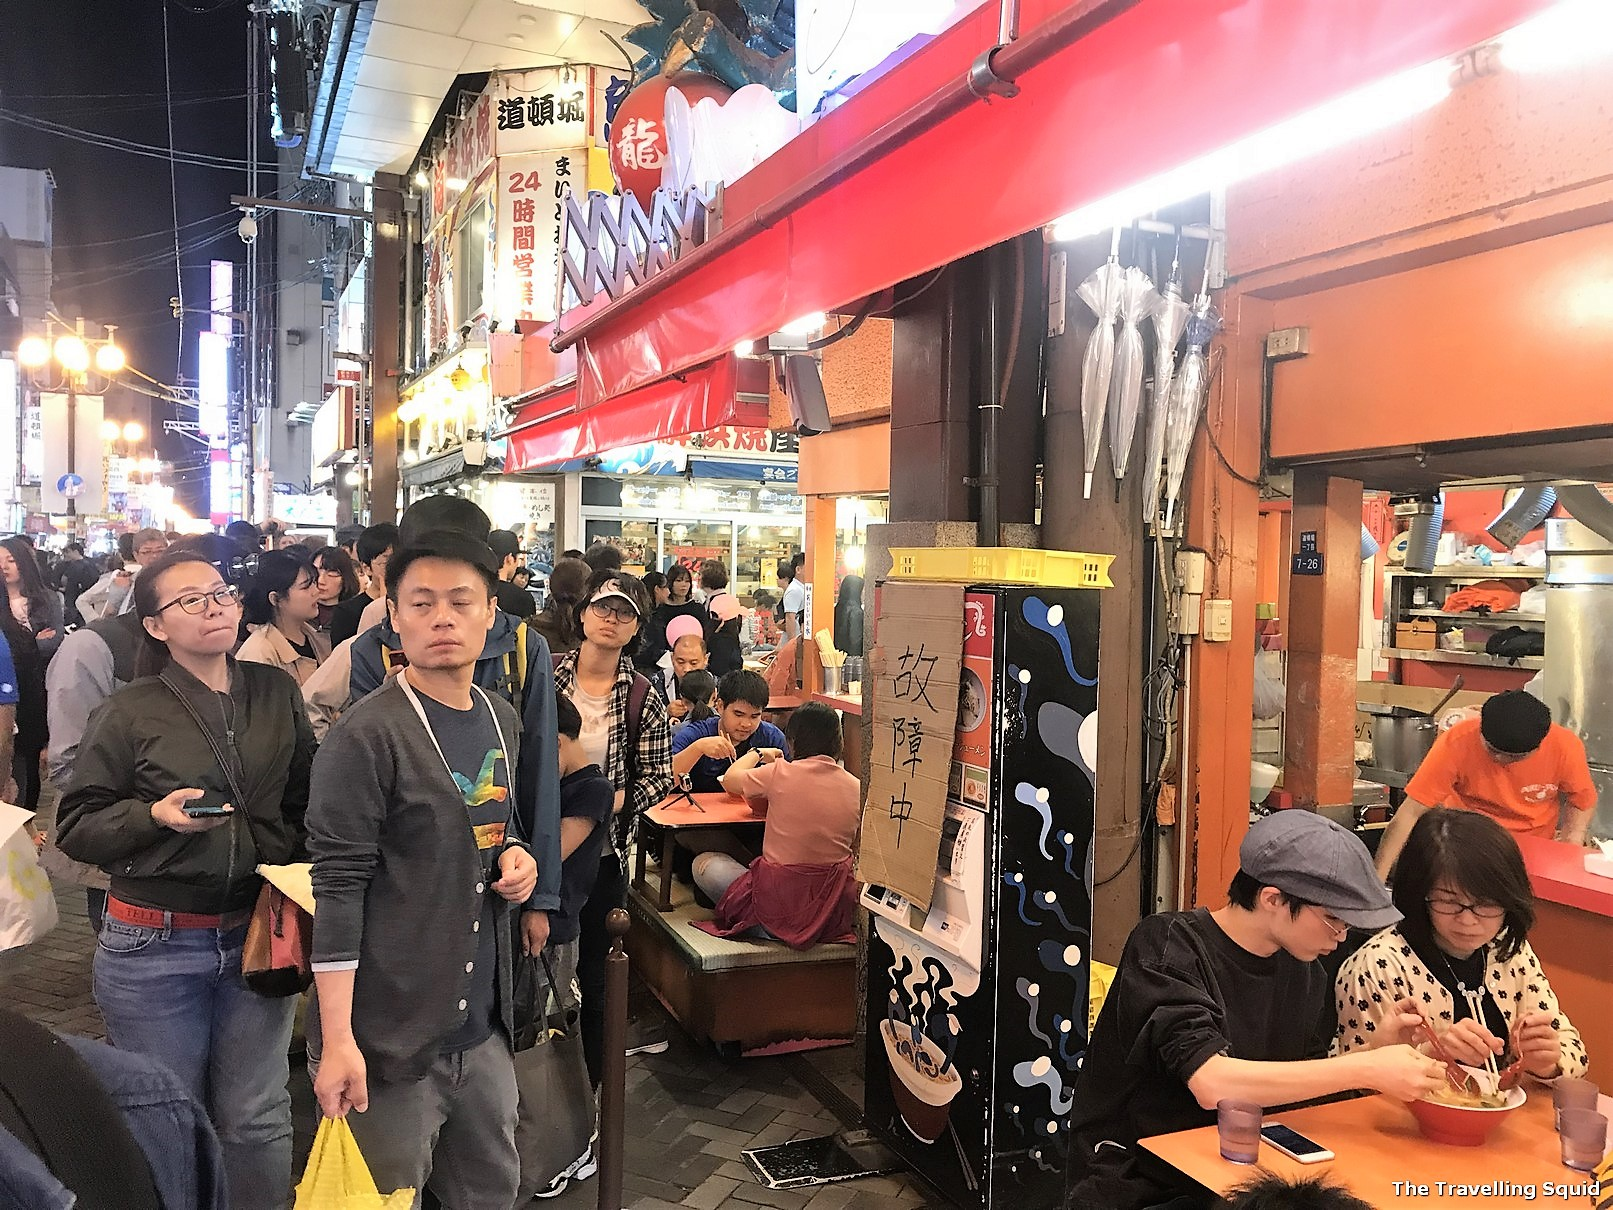 kinryu ramen places to eat and drink at Dotonbori in Osaka